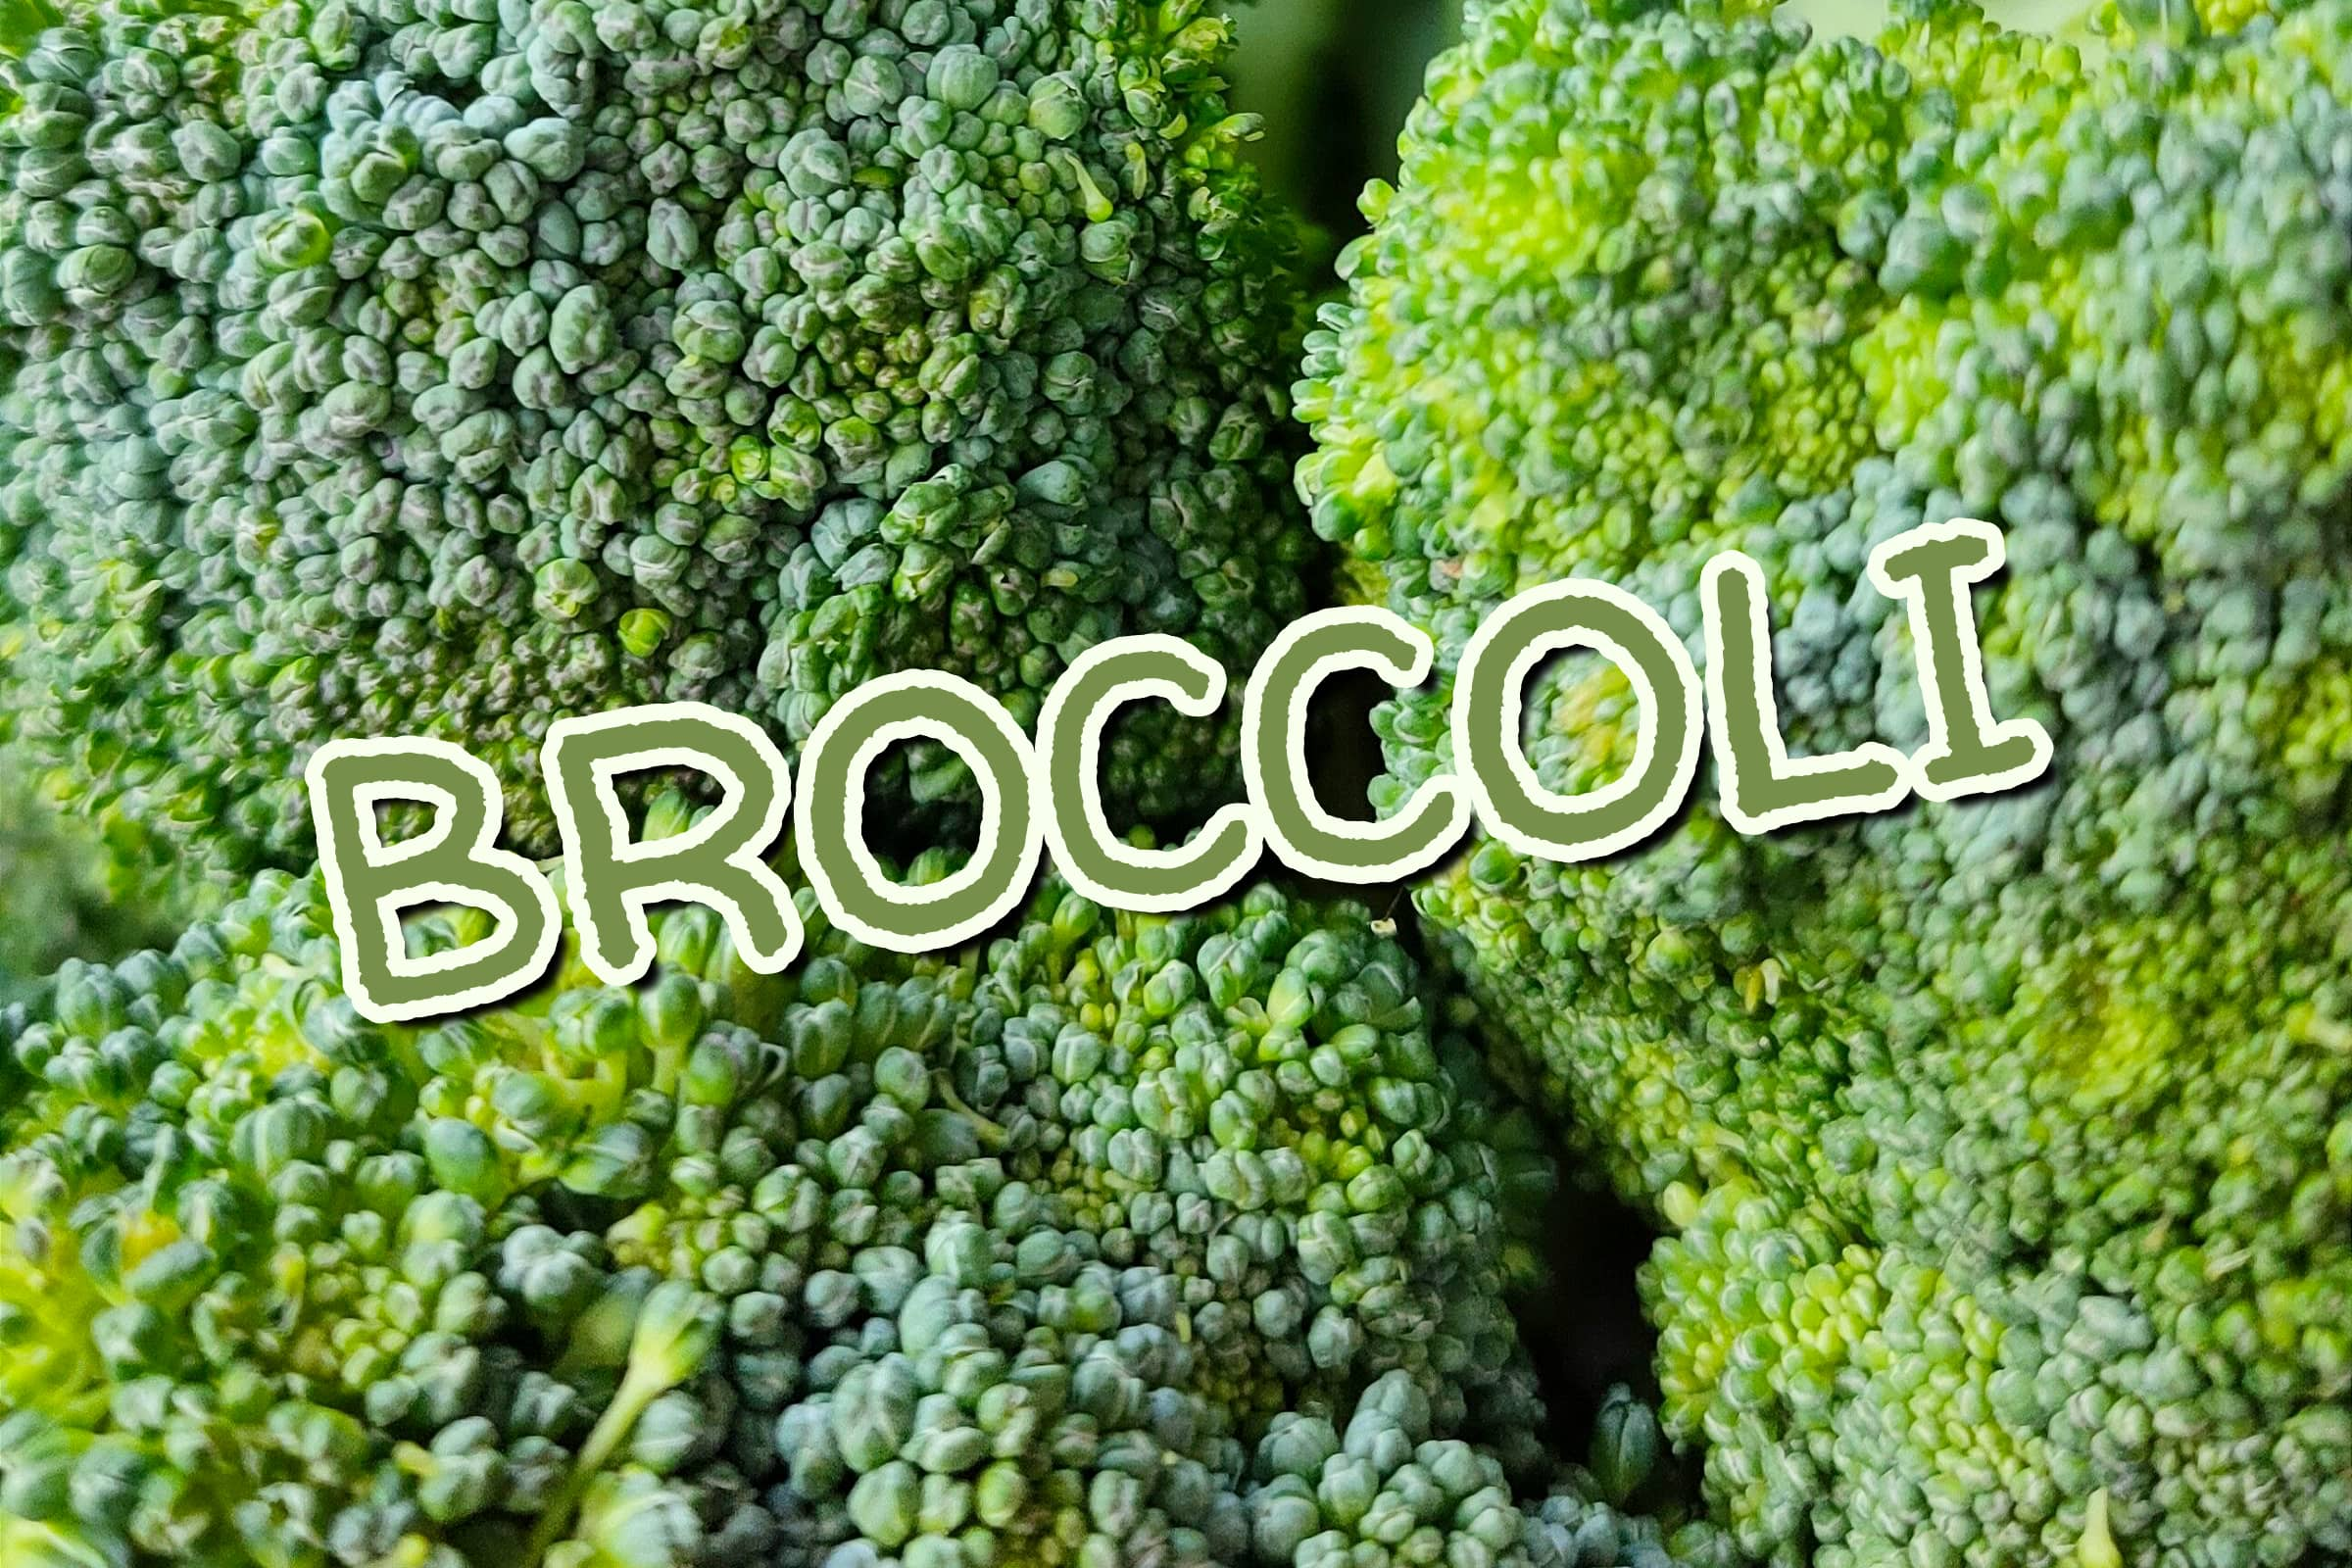 What Is The Broccoli Plant?